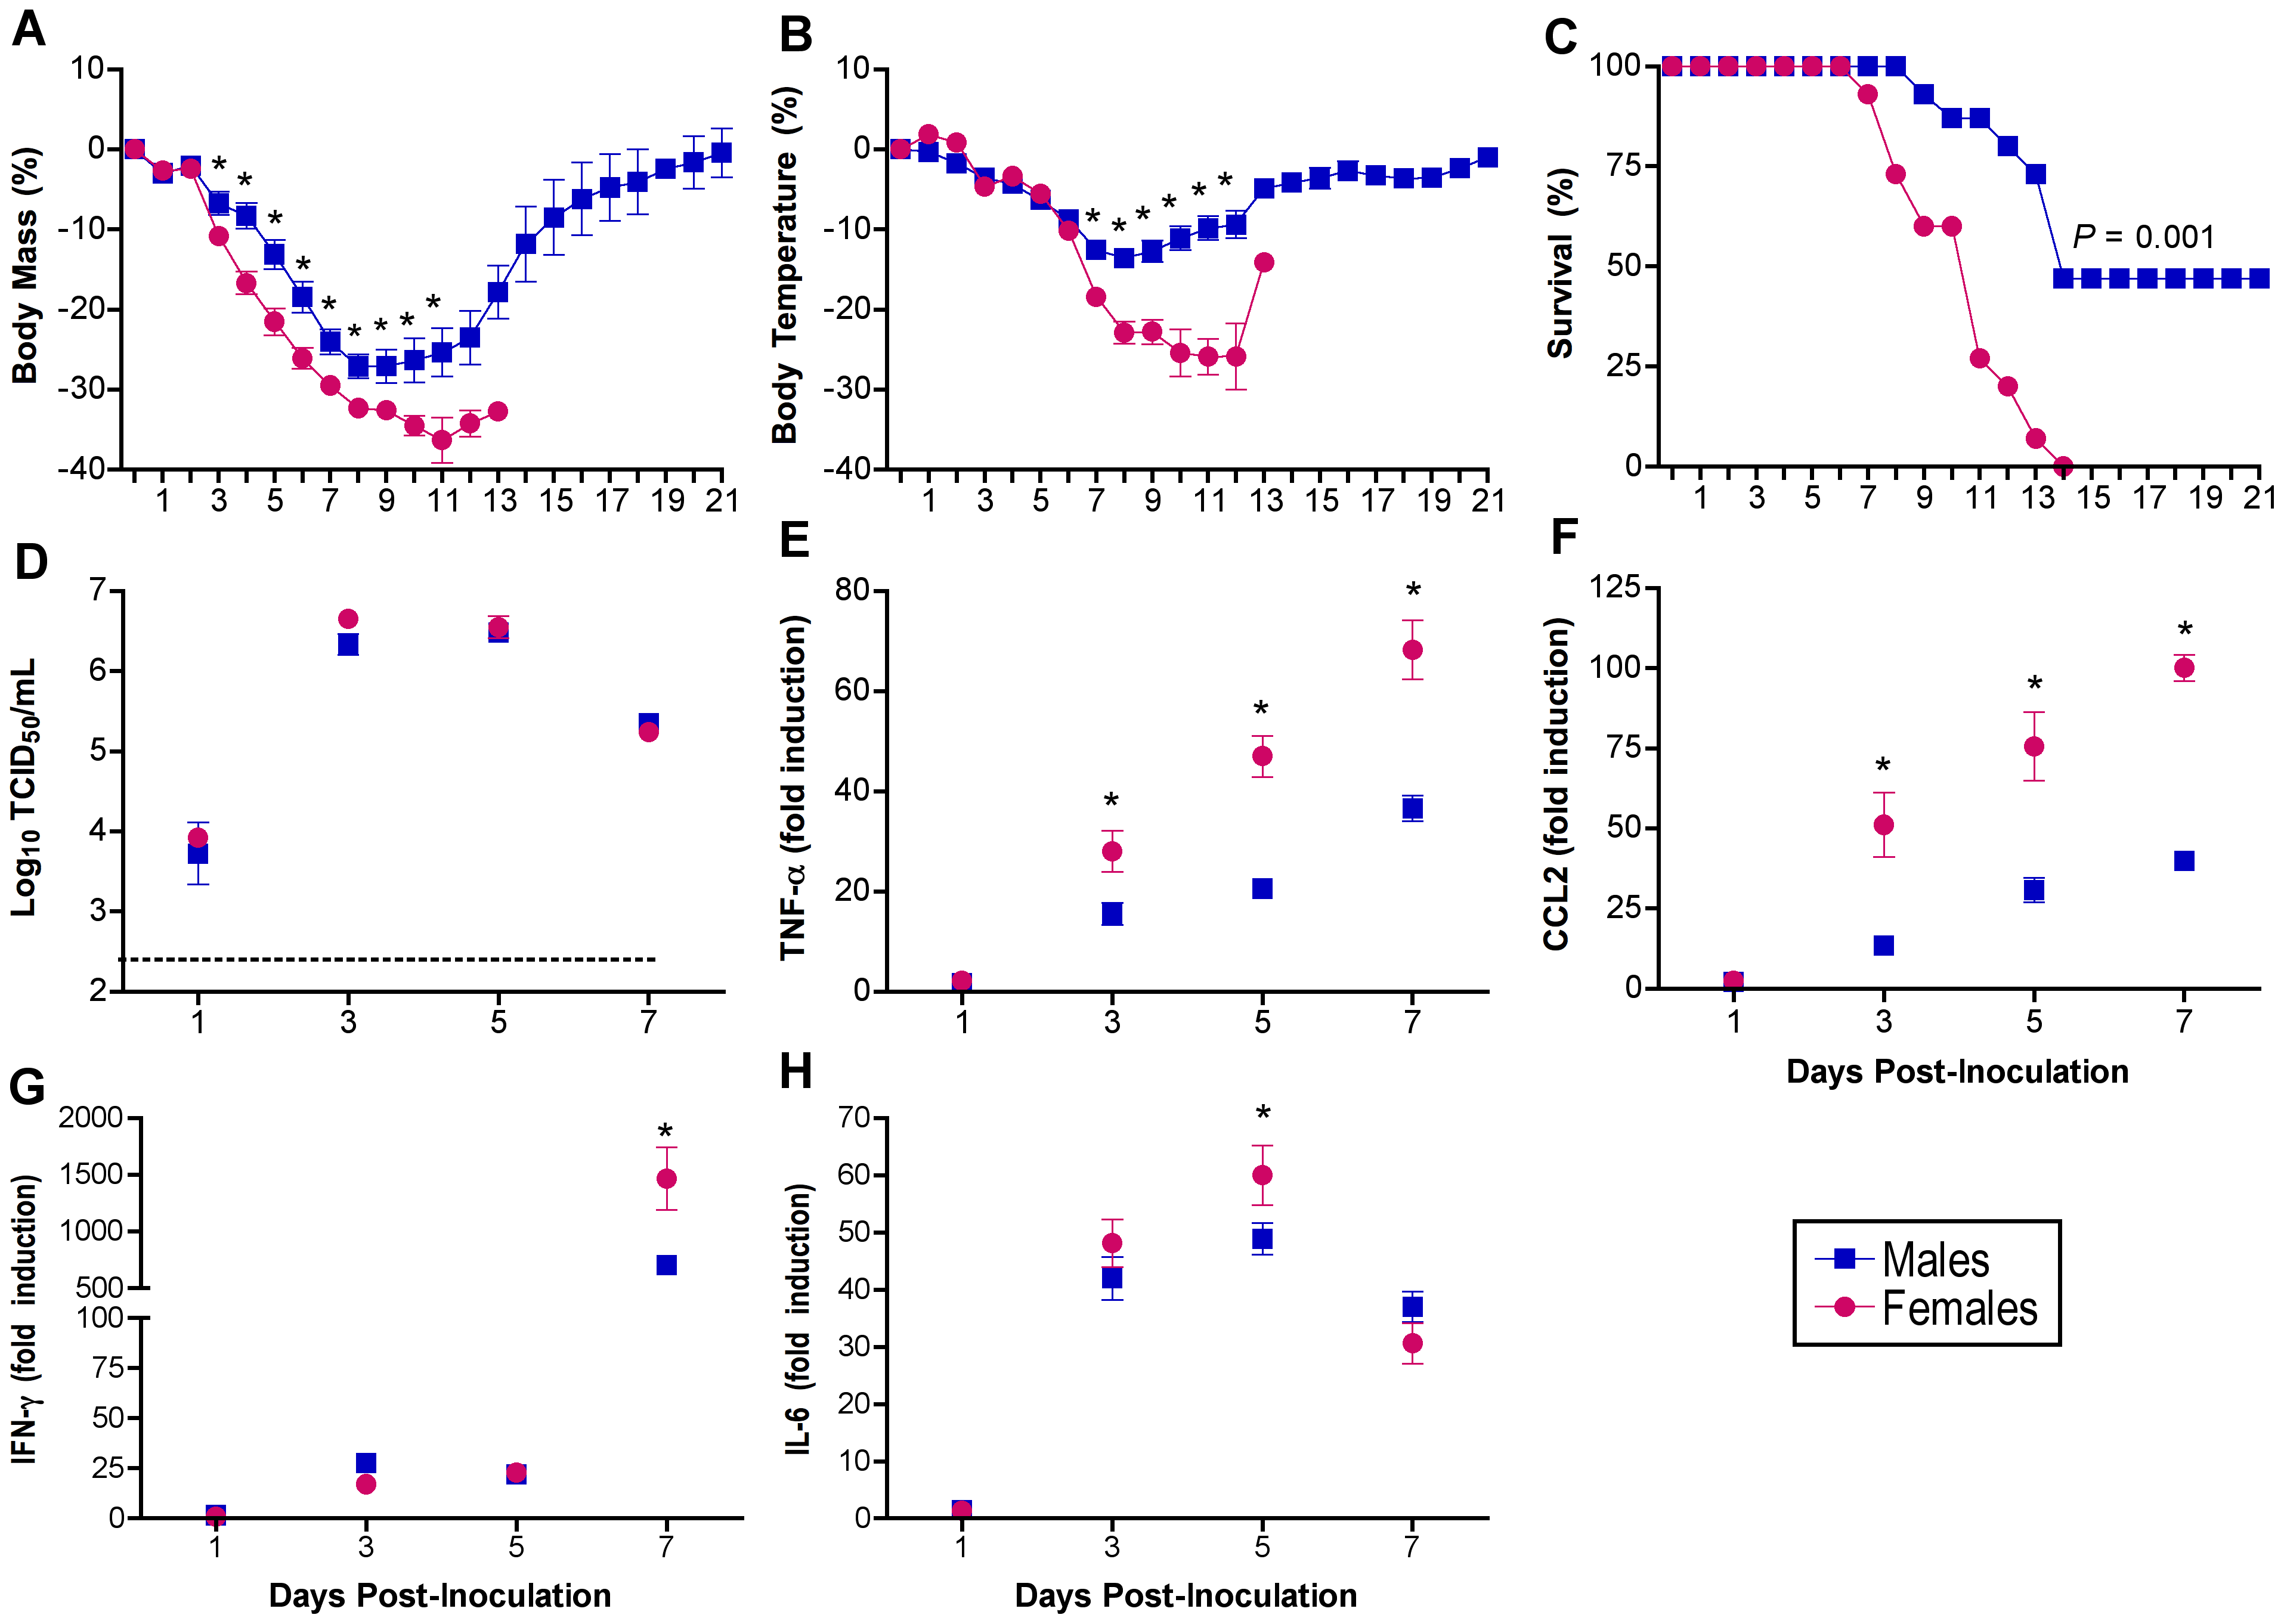 Influenza virus infection causes greater morbidity and mortality in females than males.